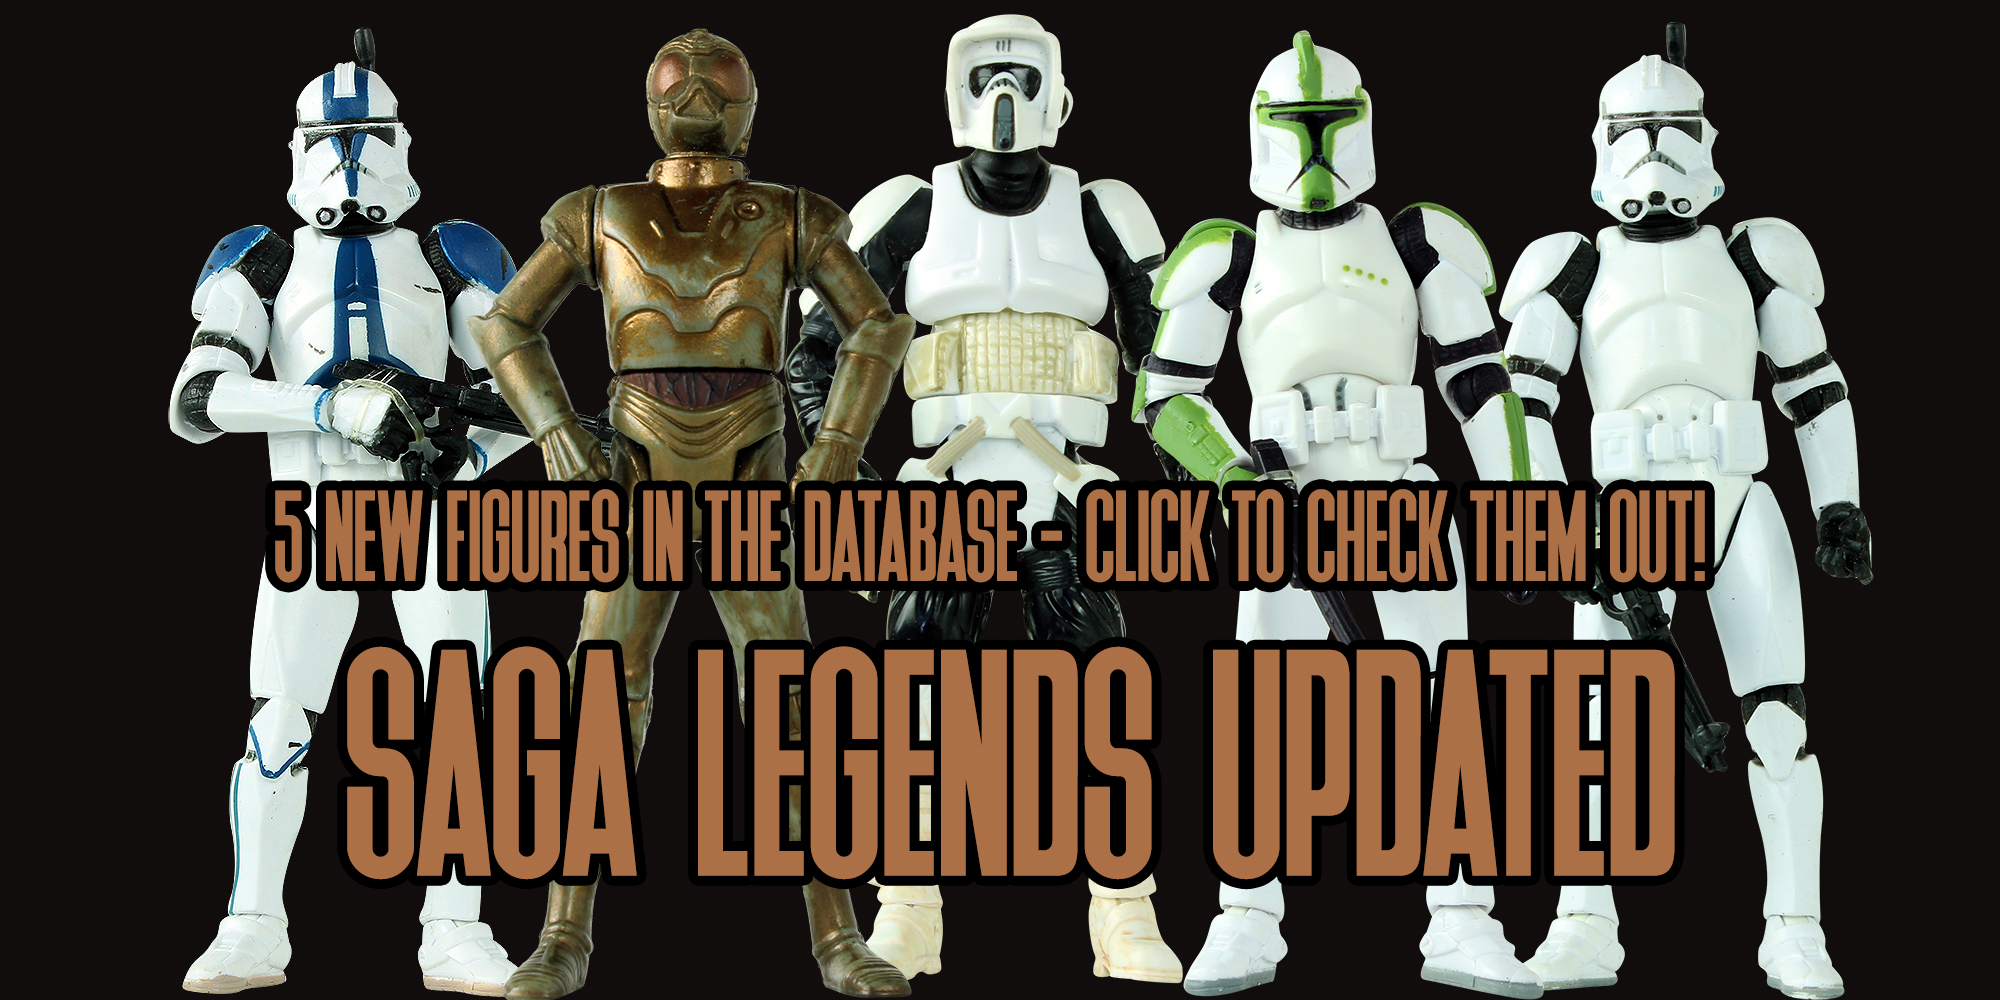 Star Wars Saga Legends